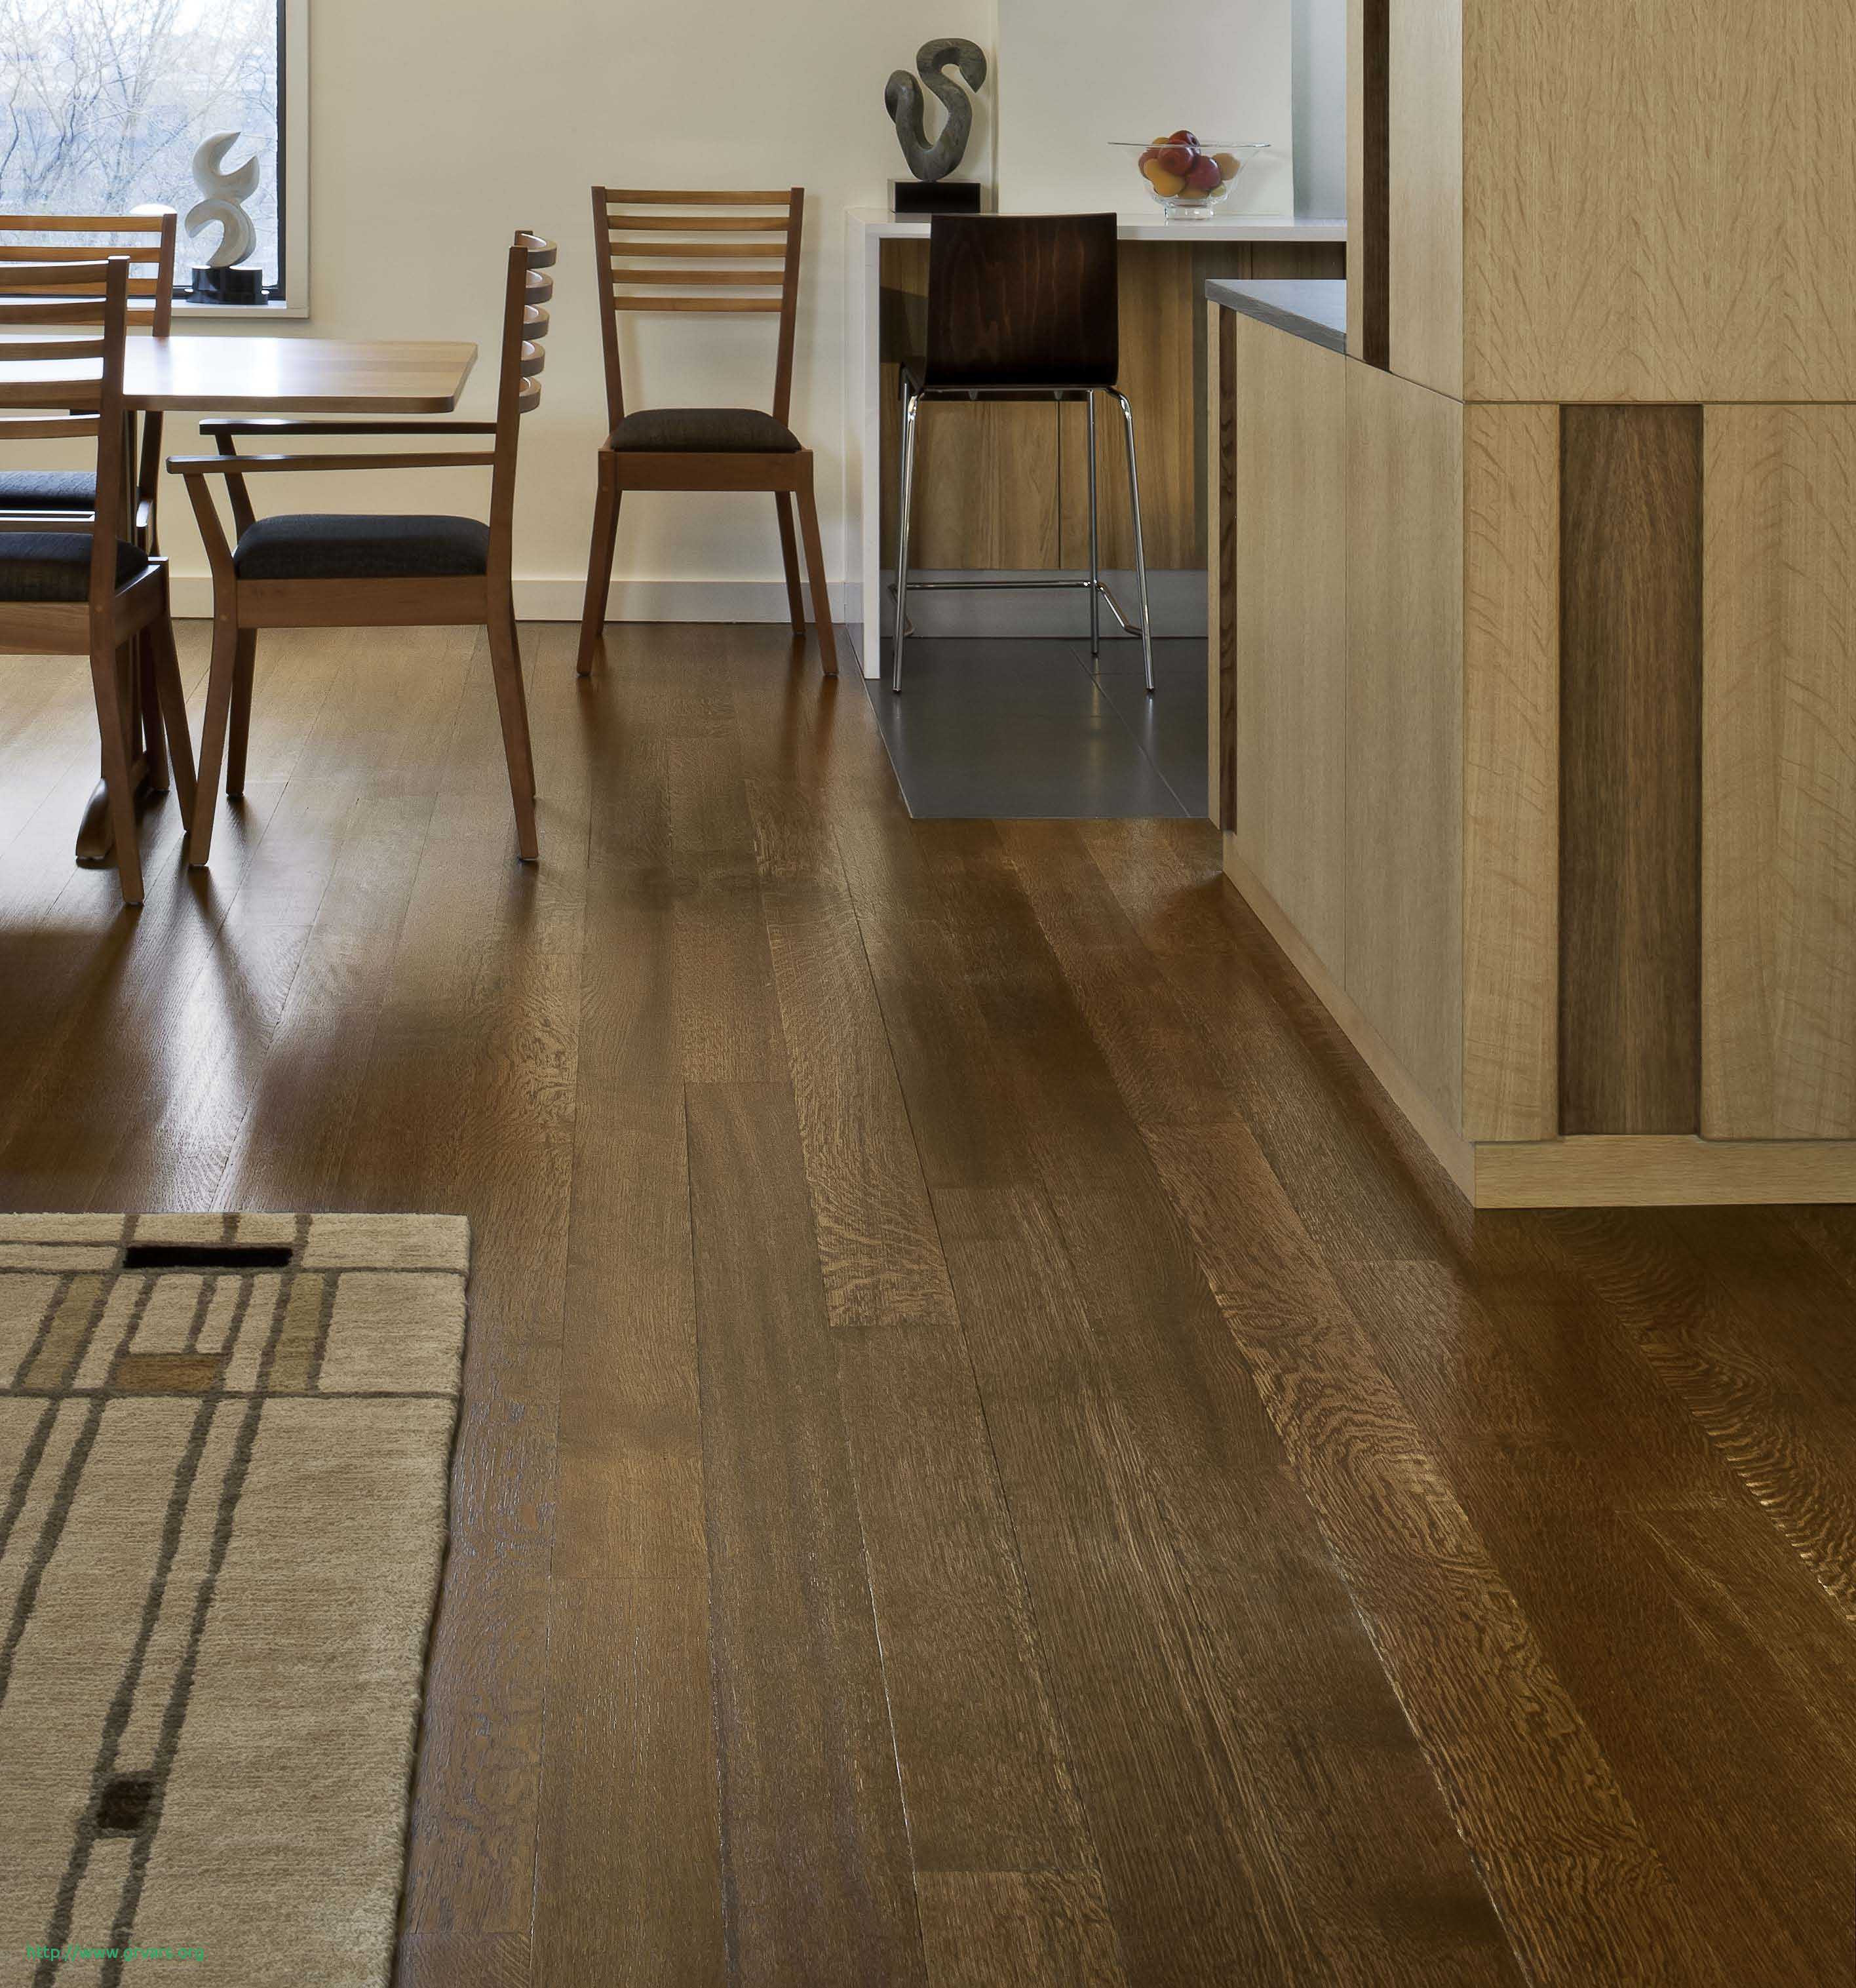 unfinished hardwood flooring prices of 21 inspirant best prices for laminate wood flooring ideas blog throughout best prices for laminate wood flooring beau engaging discount hardwood flooring 5 where to buy inspirational